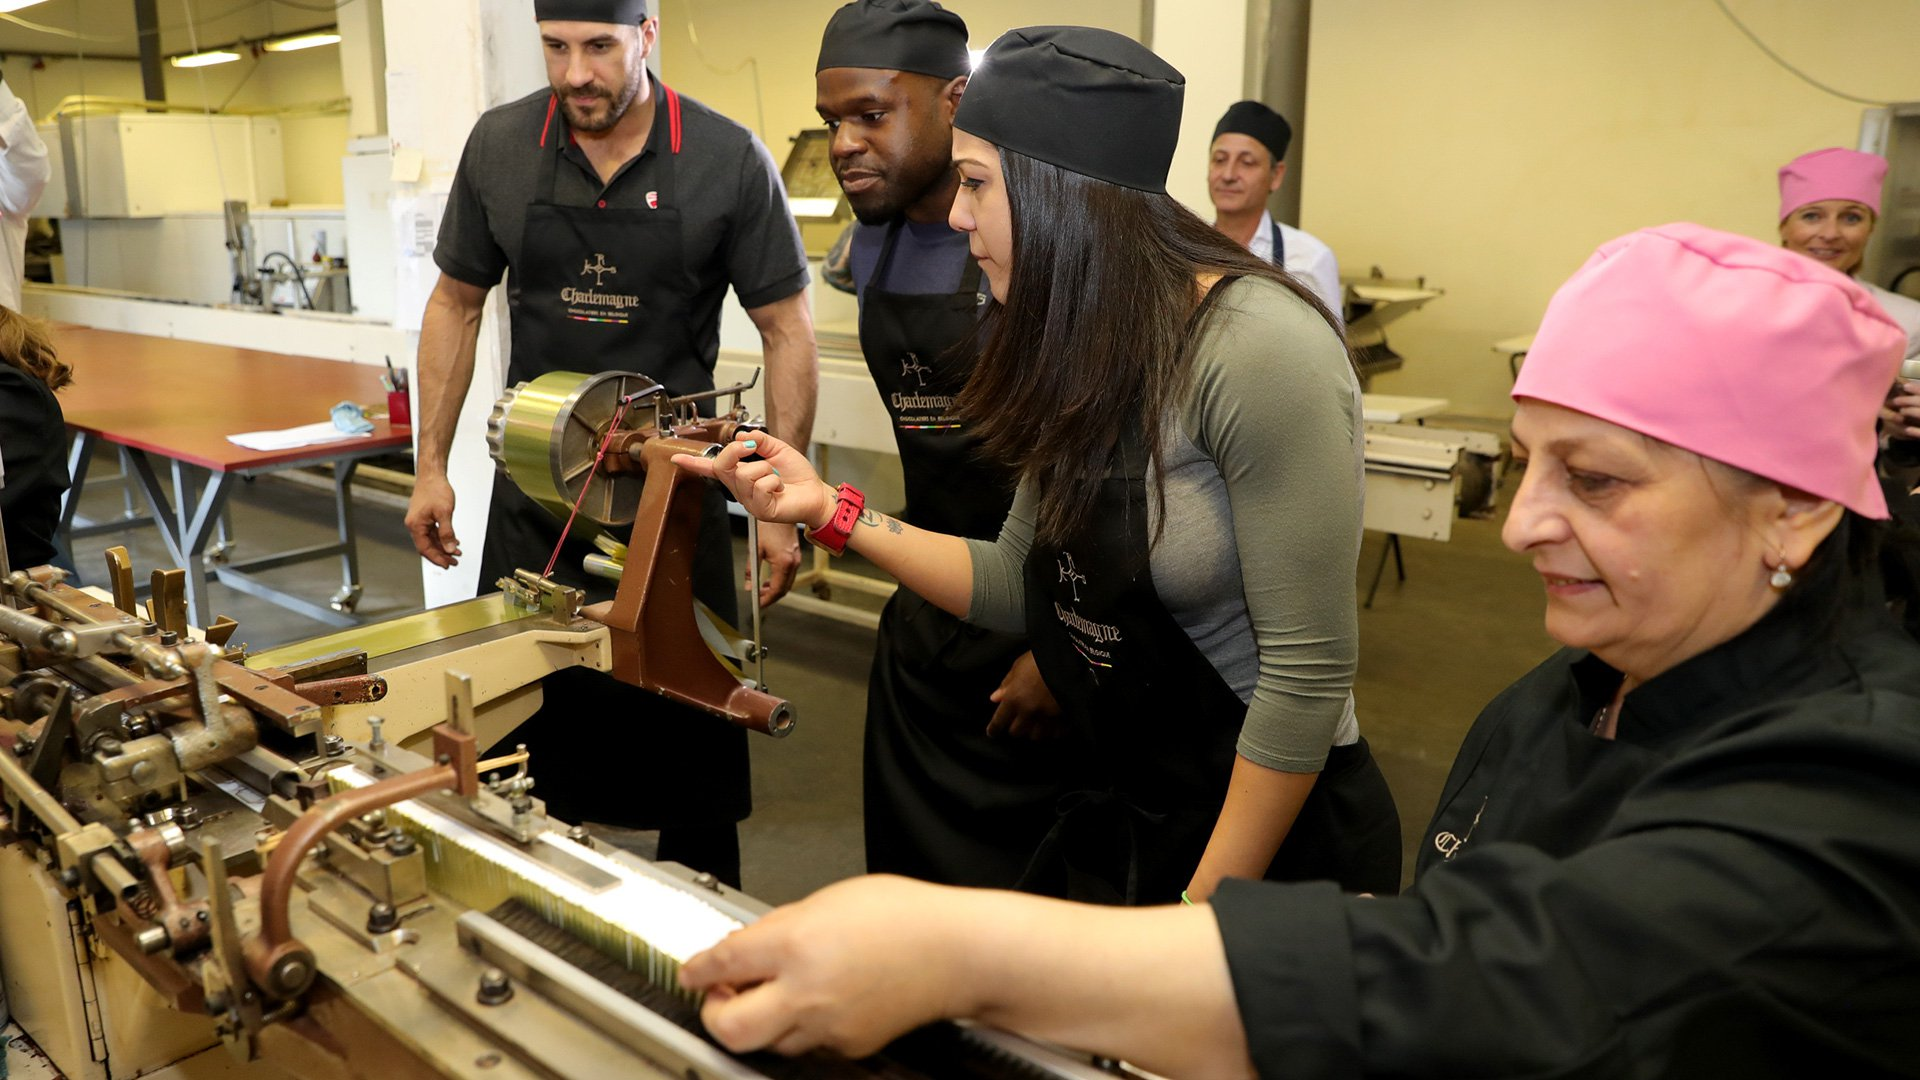 Cesaro, Apollo and Bayley get an up-close look at what goes into making that delicious Belgian chocolate.